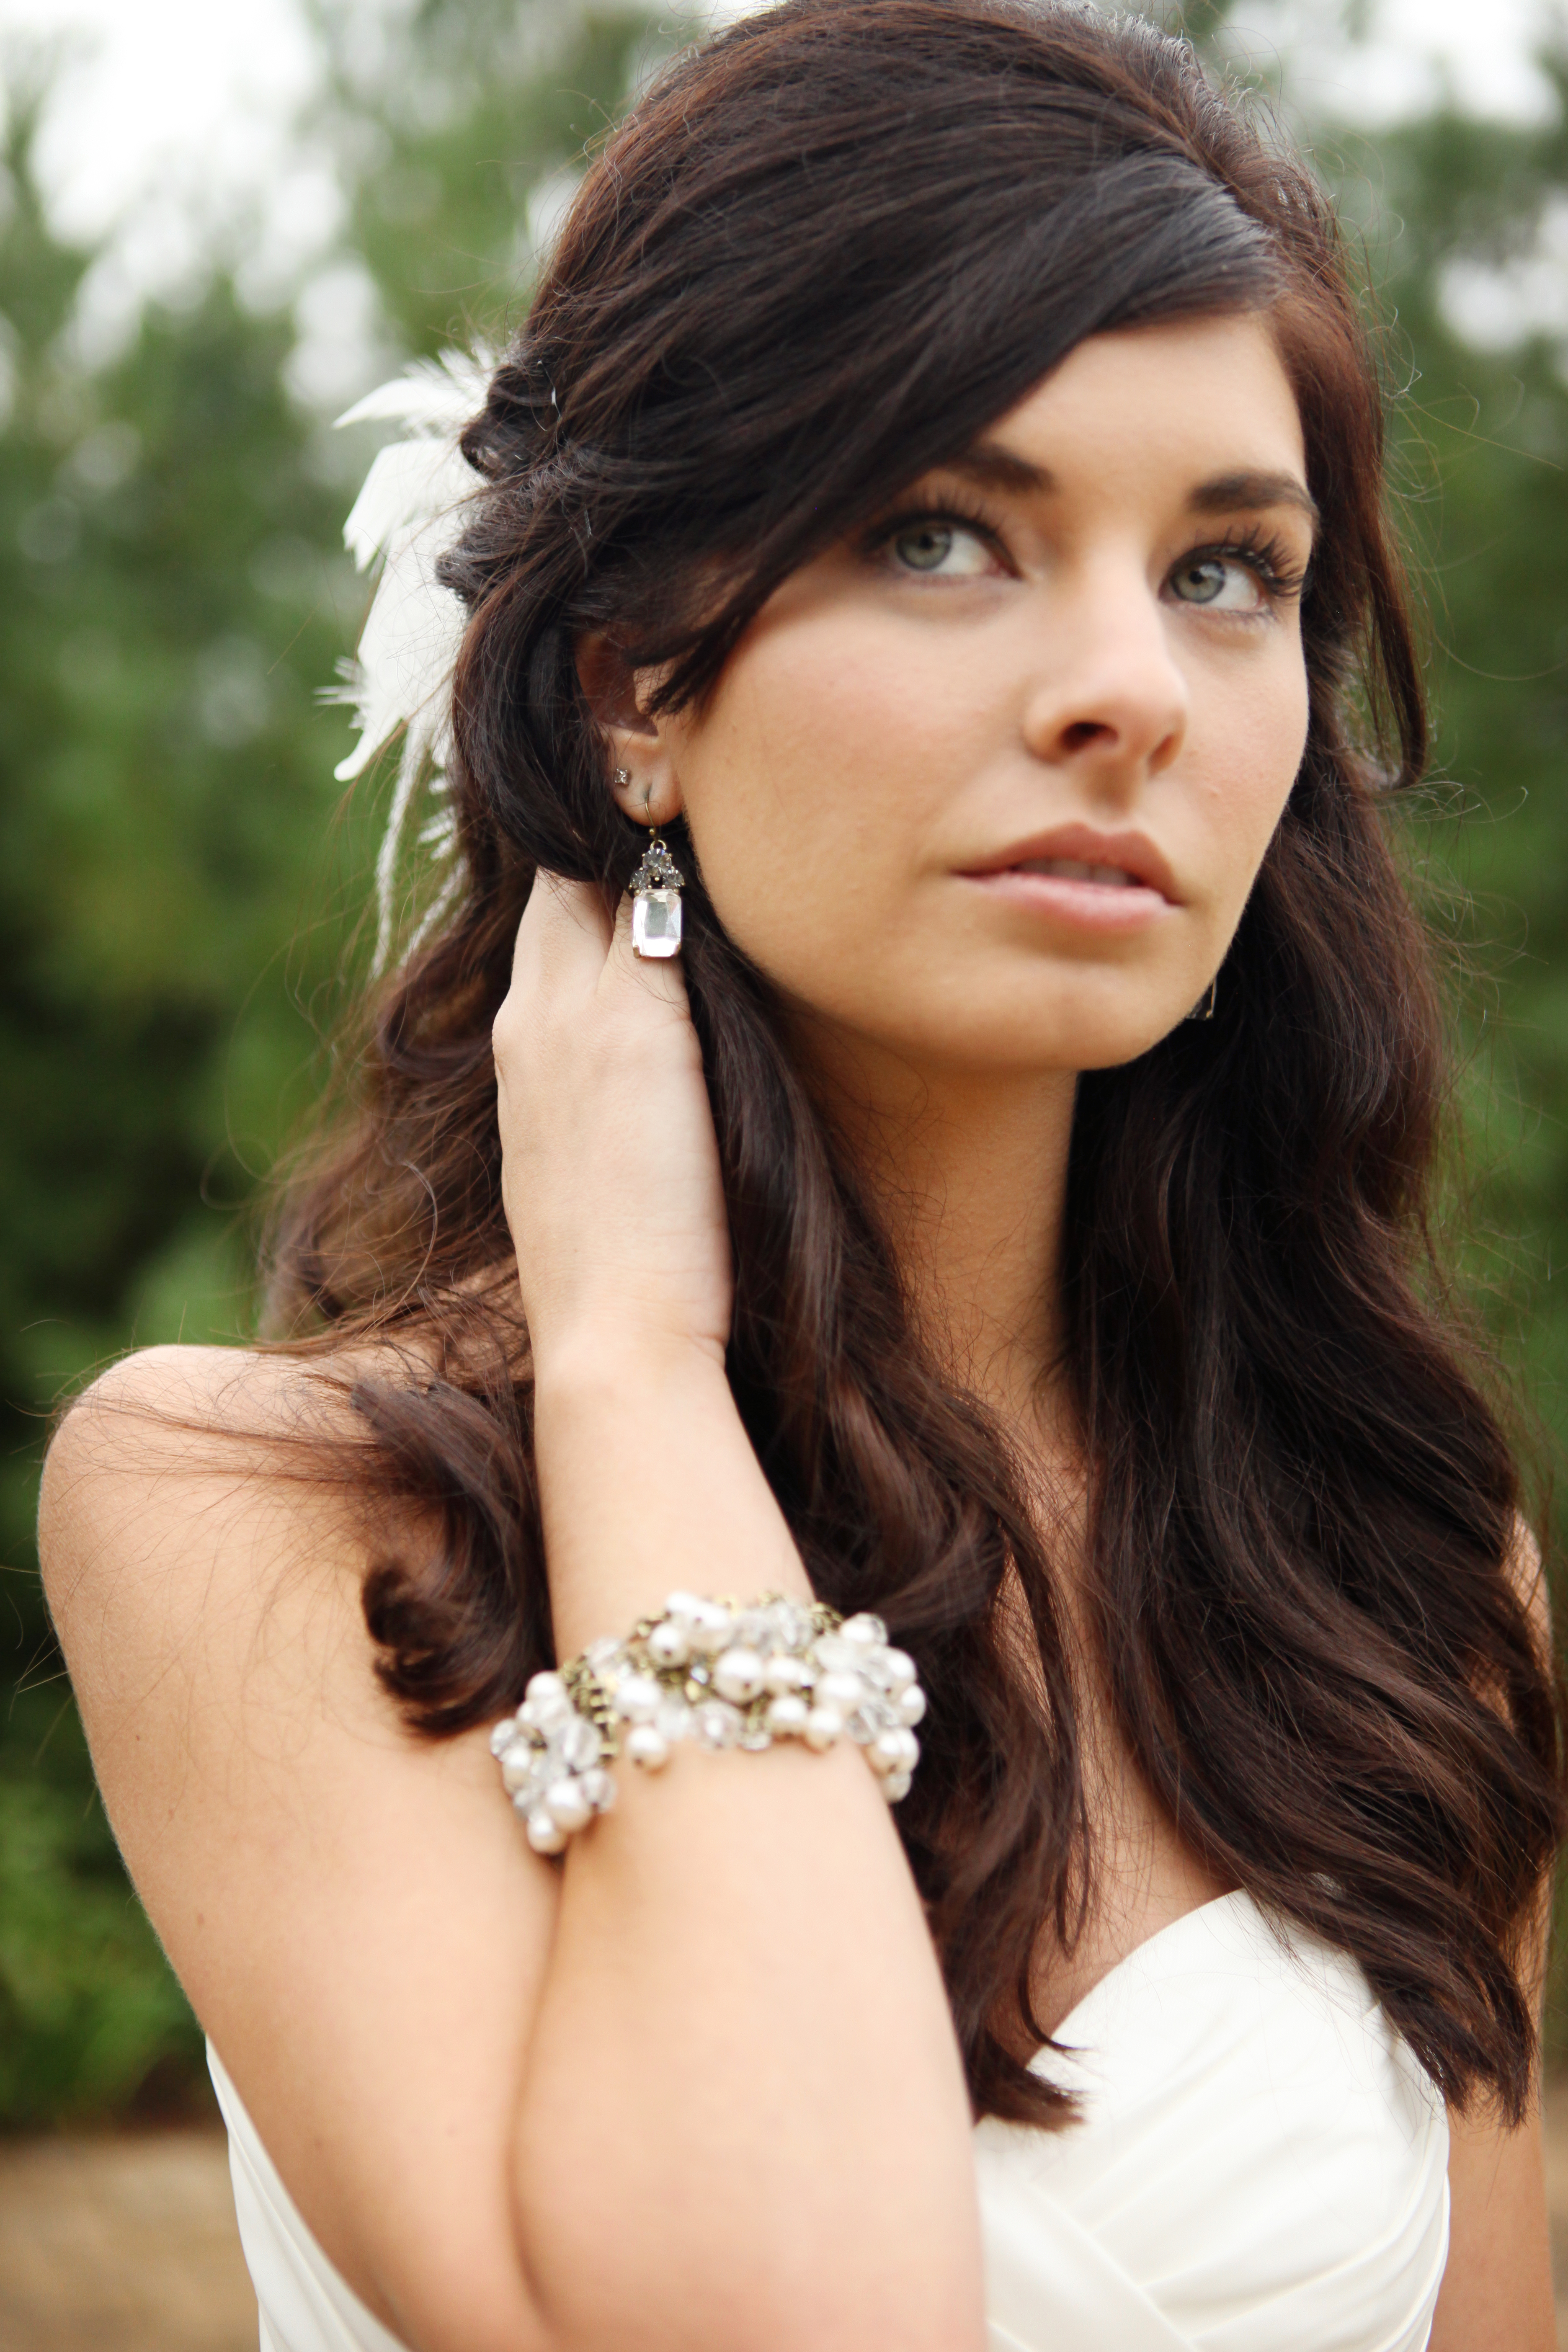 Beauty, Down, Half-up, Wavy Hair, Long Hair, Hairpin, Feathers